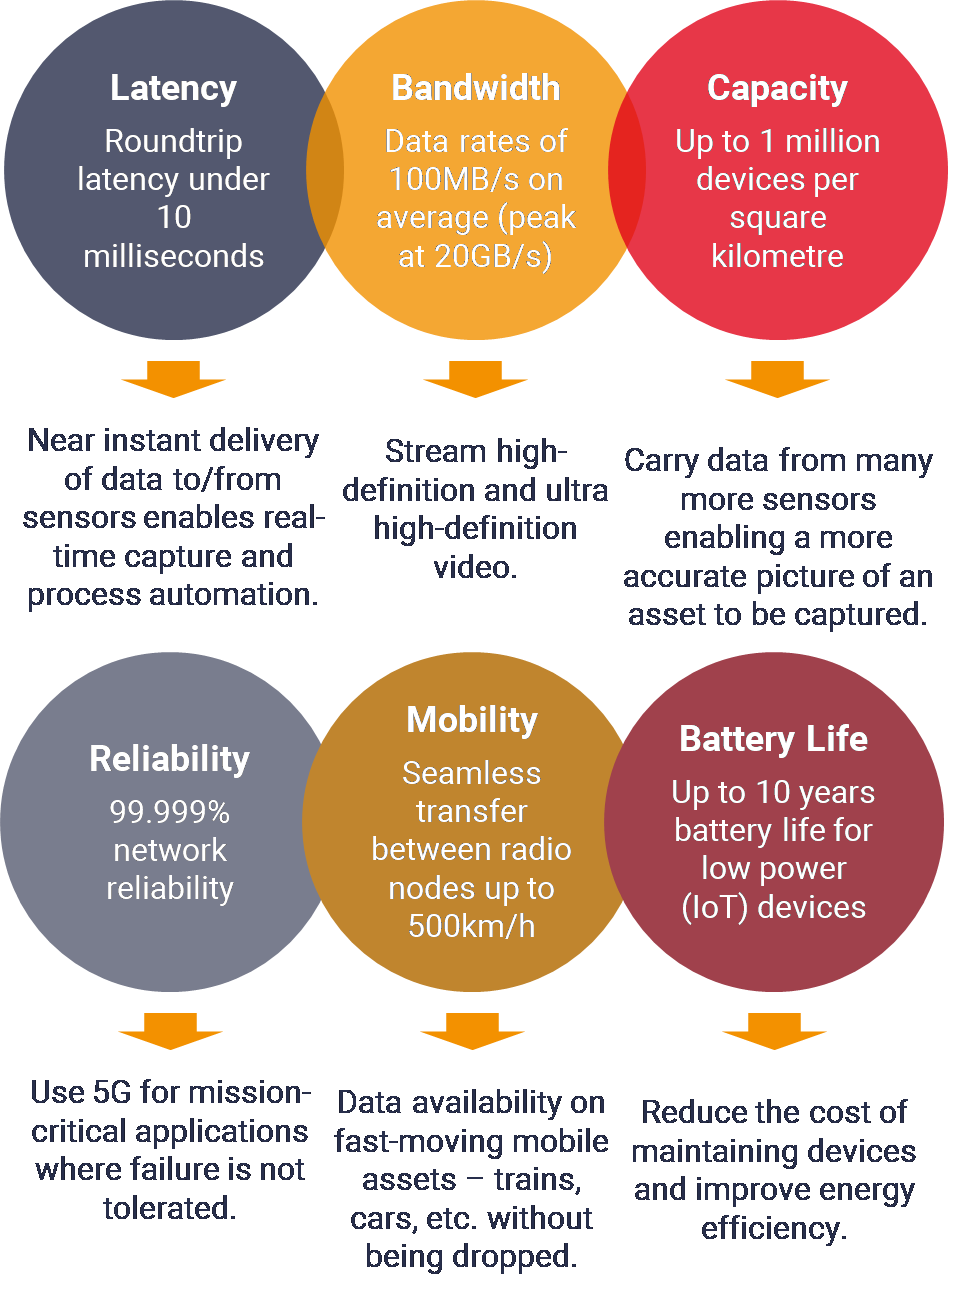 5G capabilities support digital twins